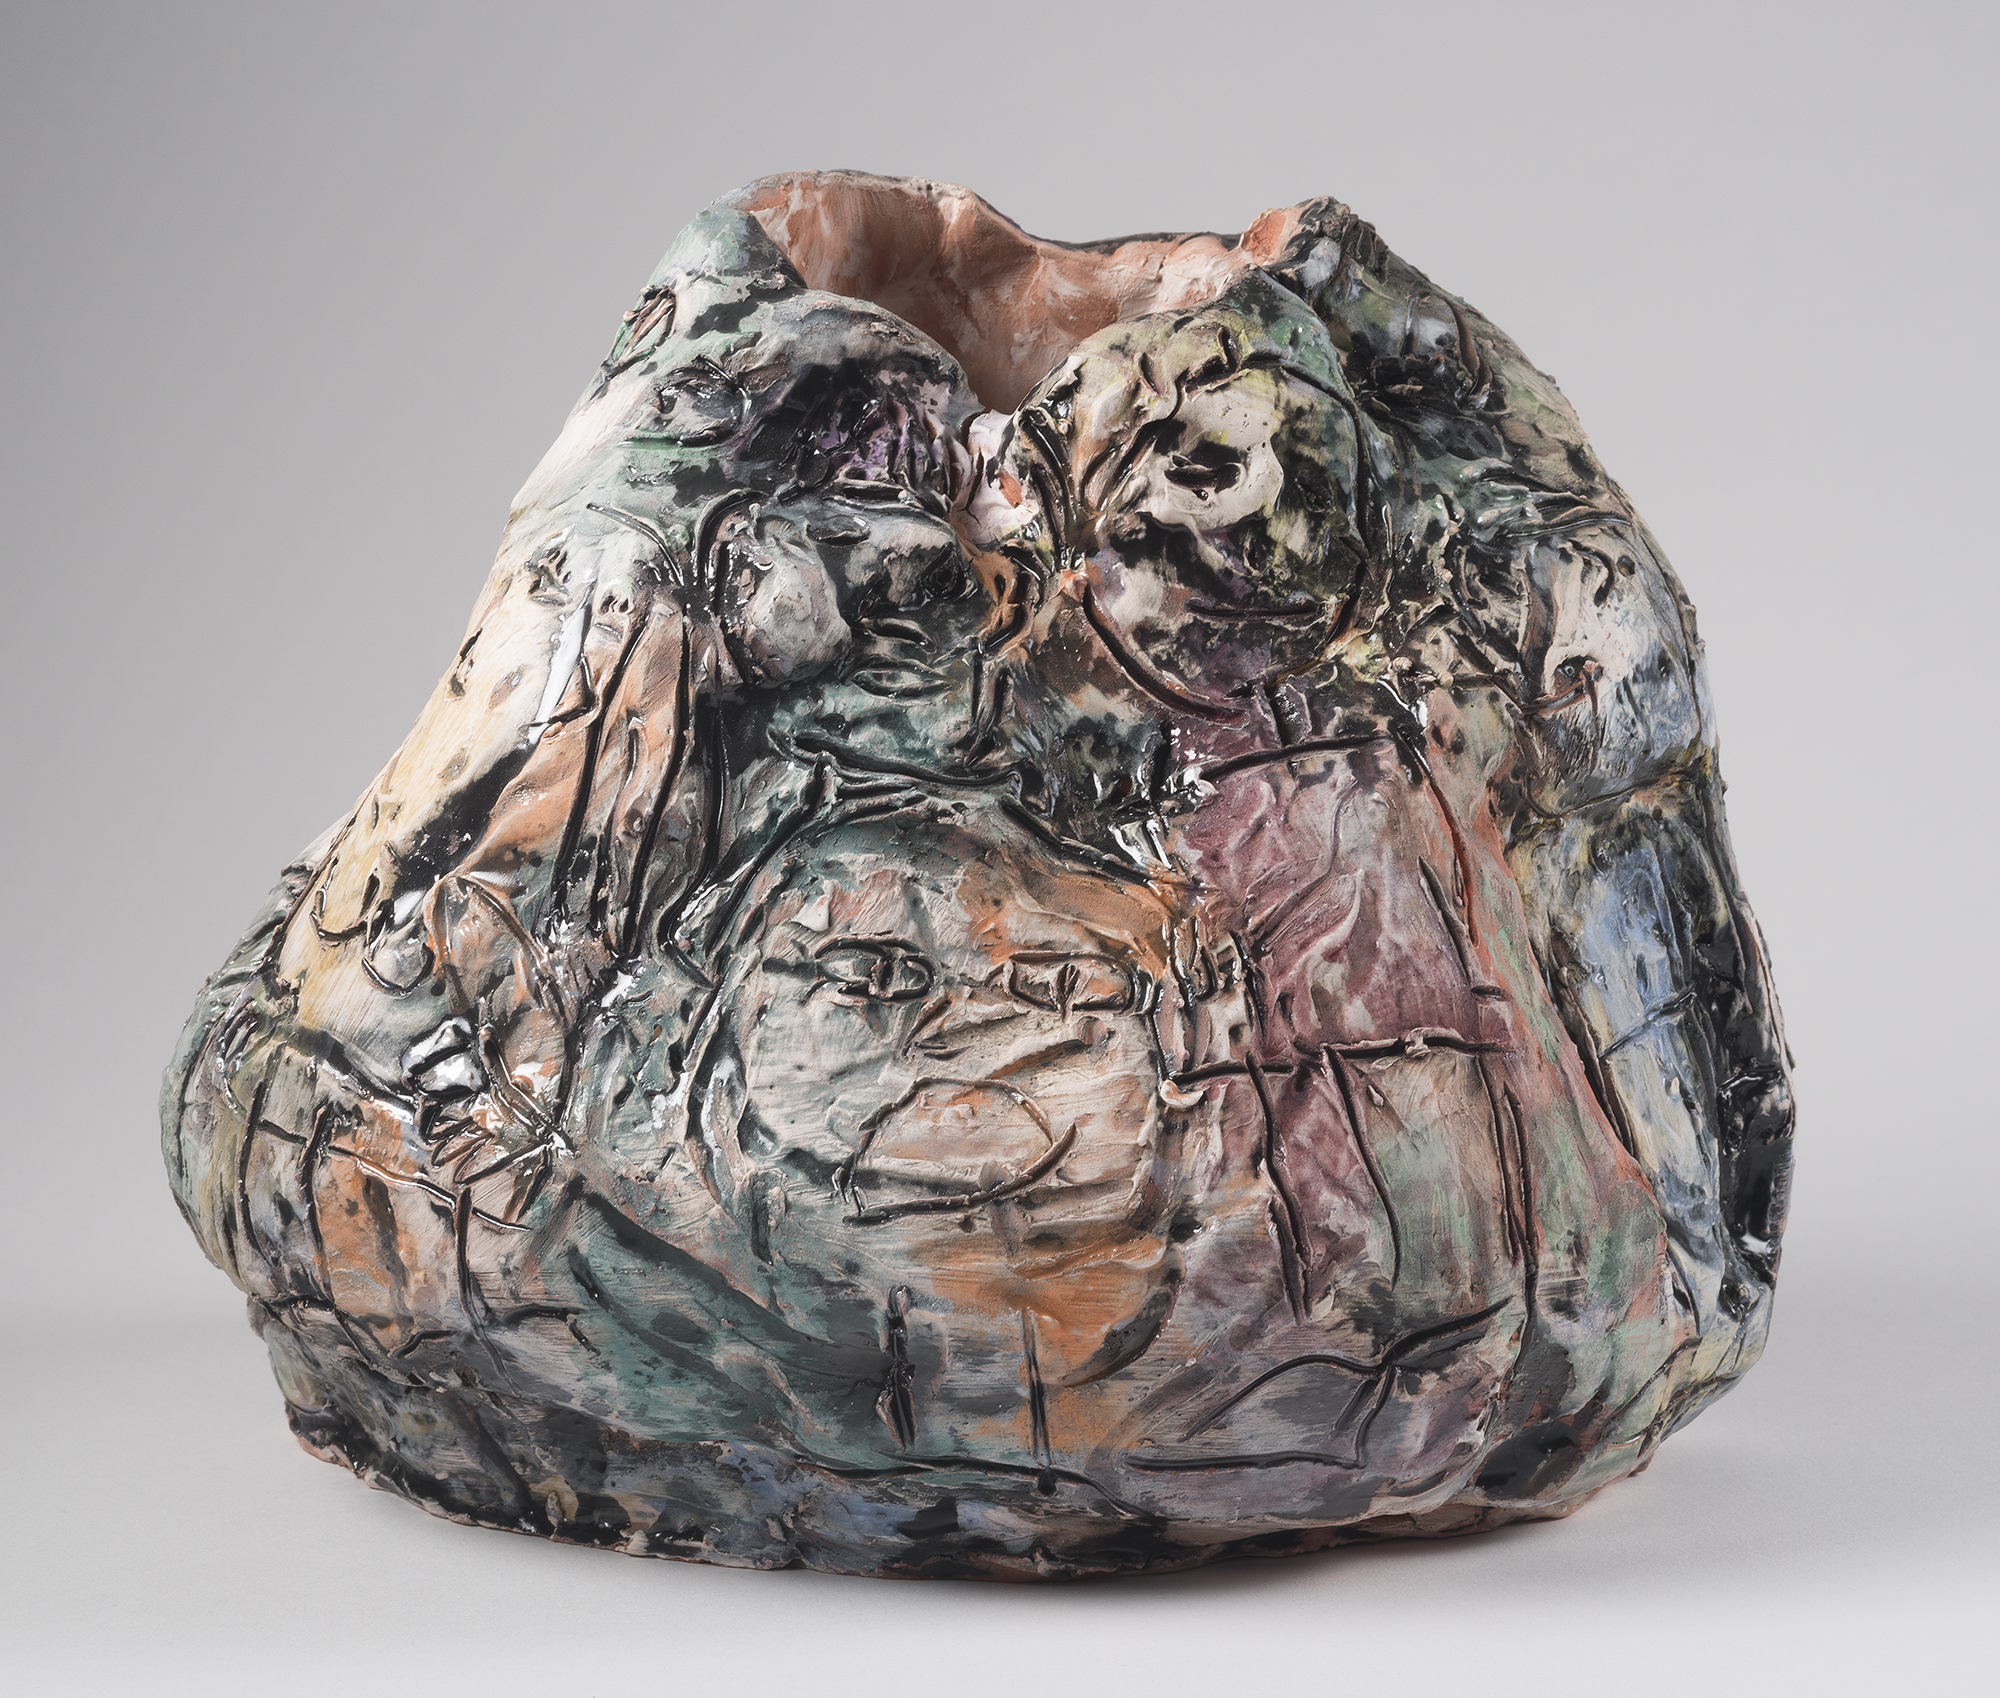 """Bag O' Goodies and Baddies (view 2), 2015, 14""""x14""""x14"""", Earthenware with Underglaze and Majolica"""